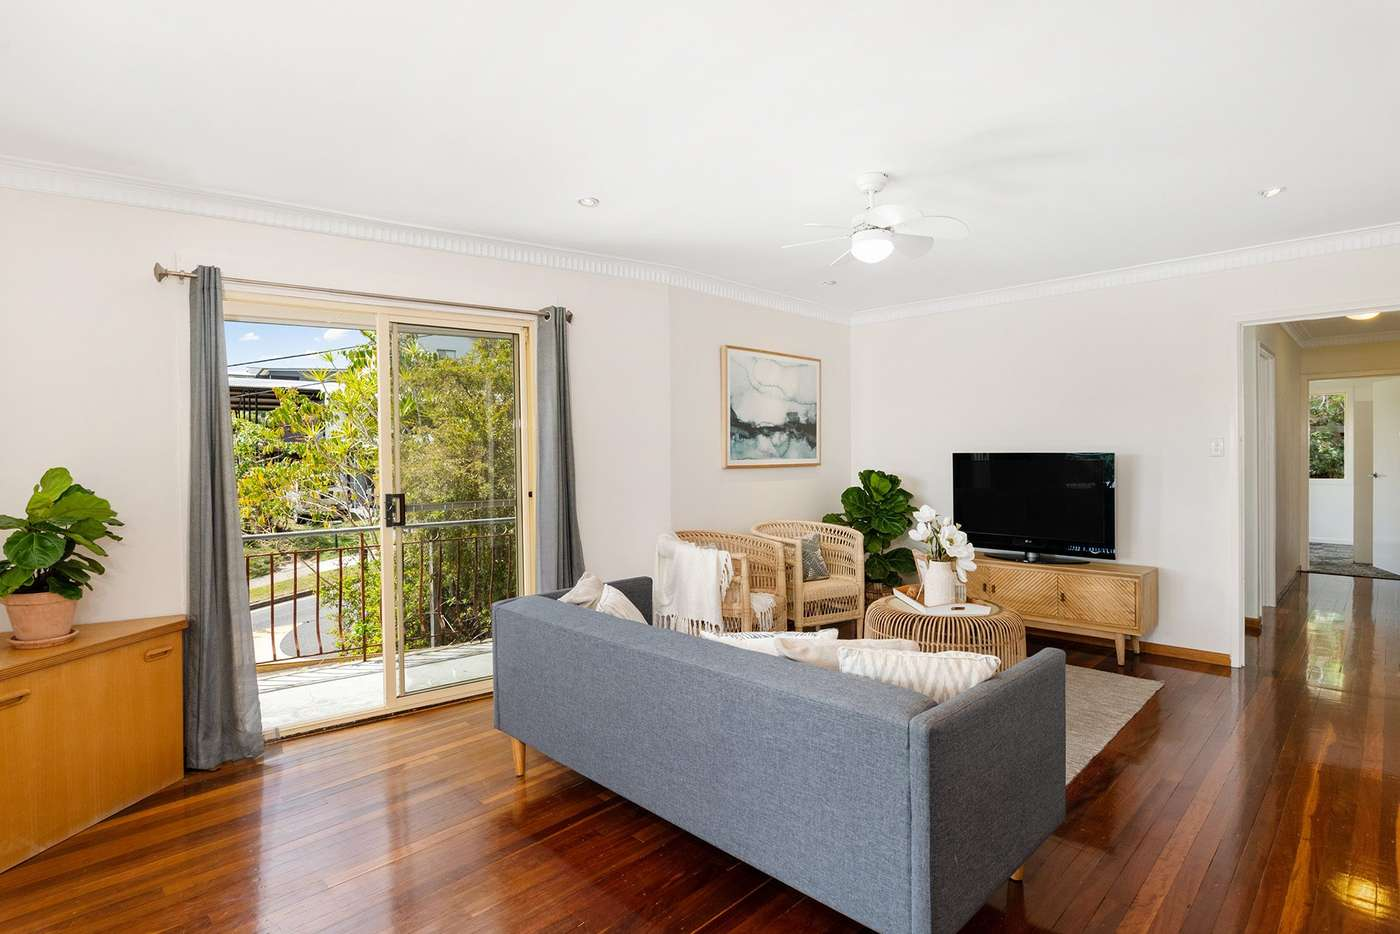 Fifth view of Homely house listing, 124 Mountain Street, Mount Gravatt QLD 4122